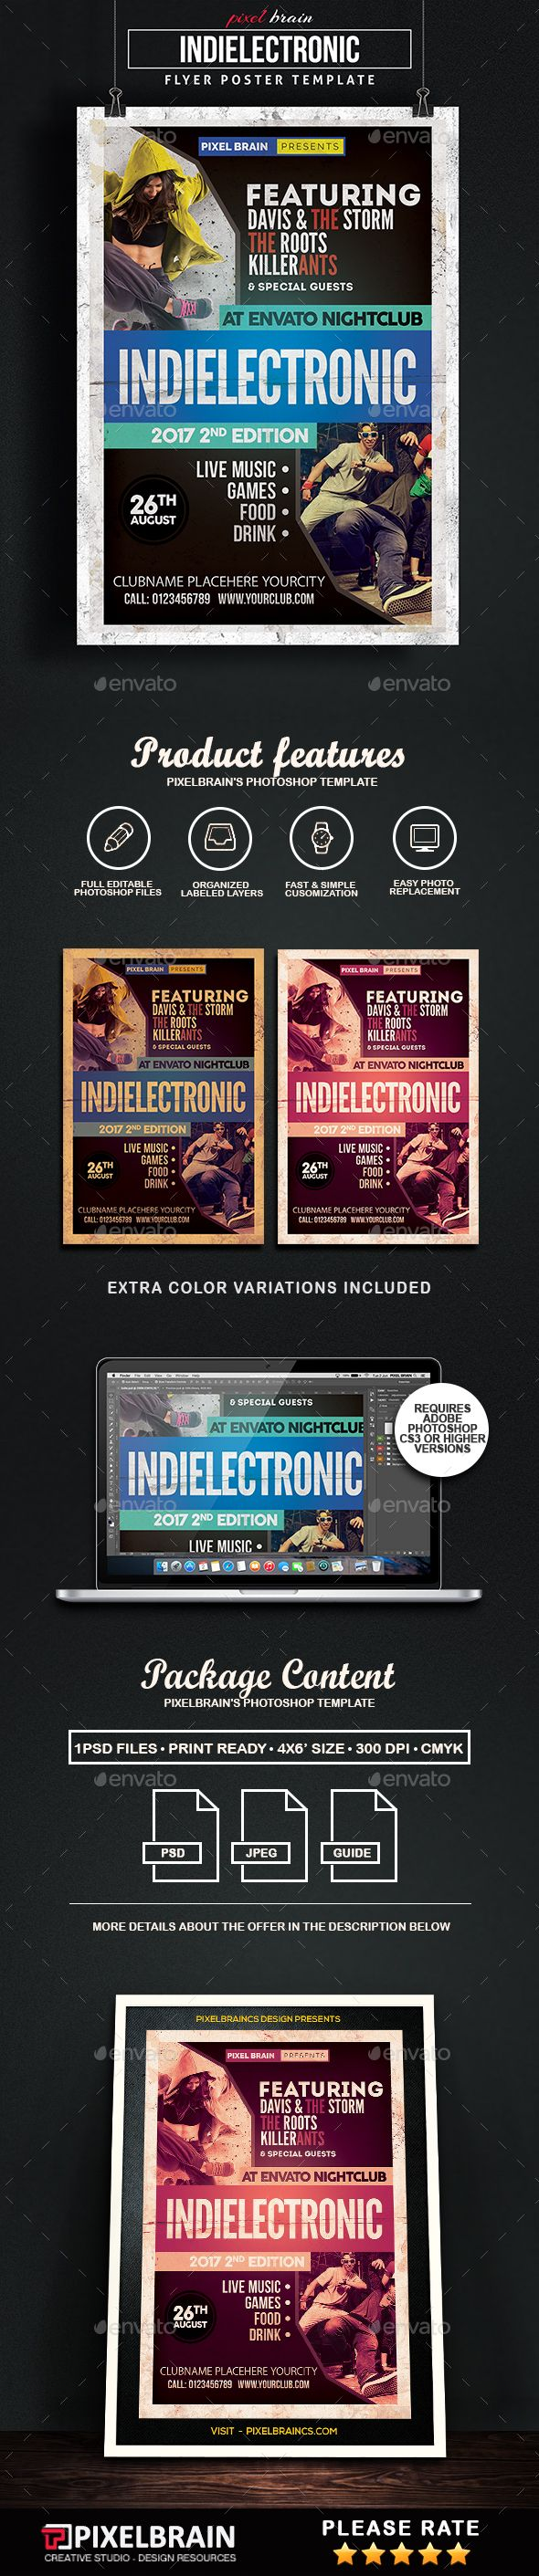 Indie Electronic Flyer Template Vol 4 Psd Template Only